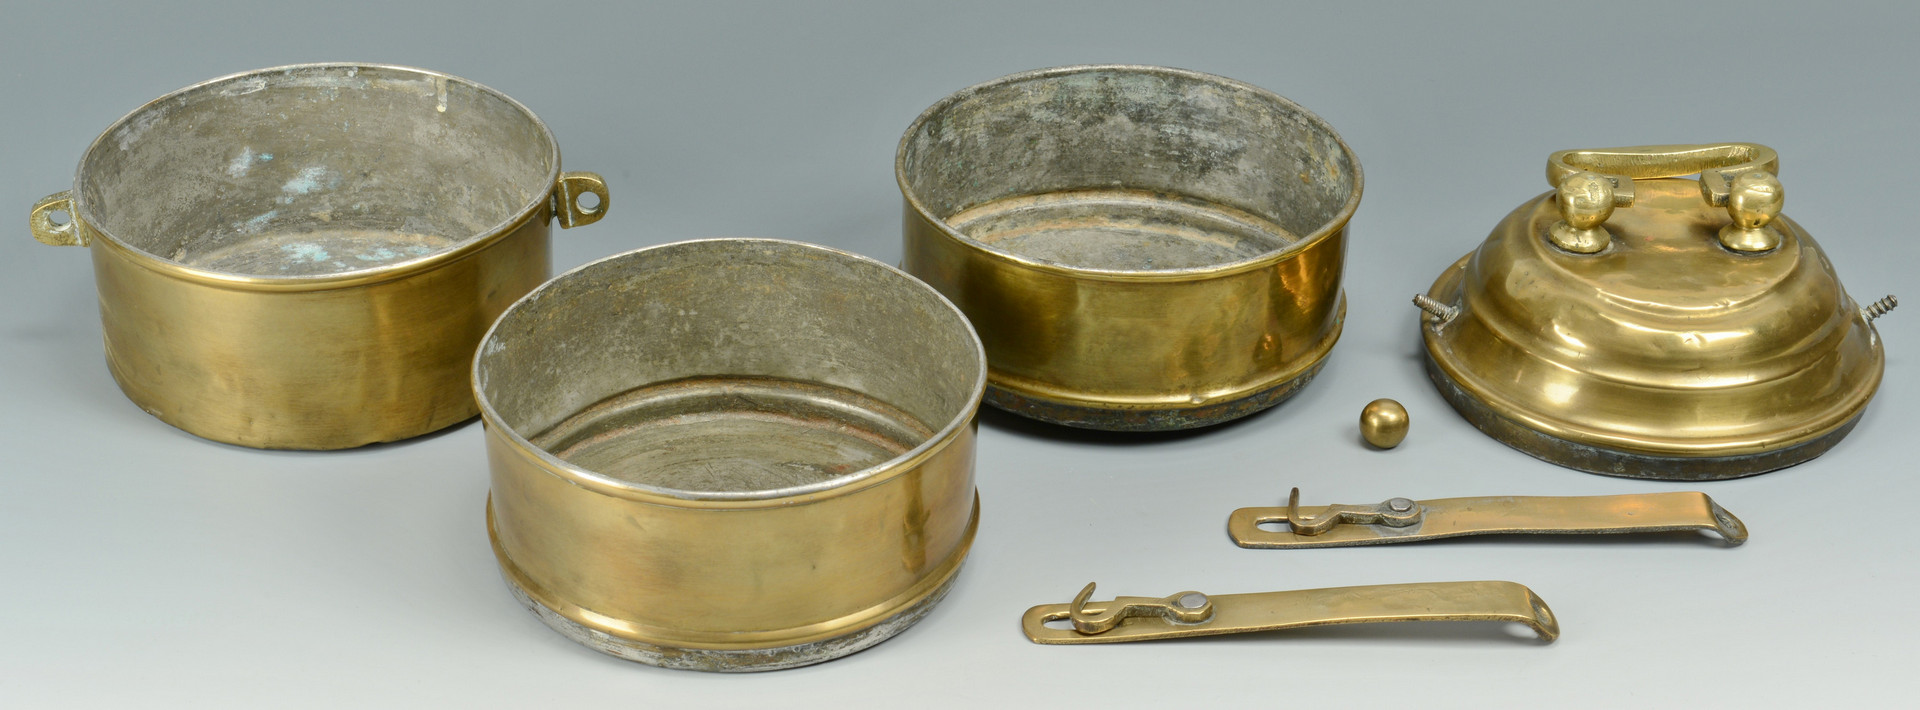 Lot 595: Grouping of Metal Items, 5 total